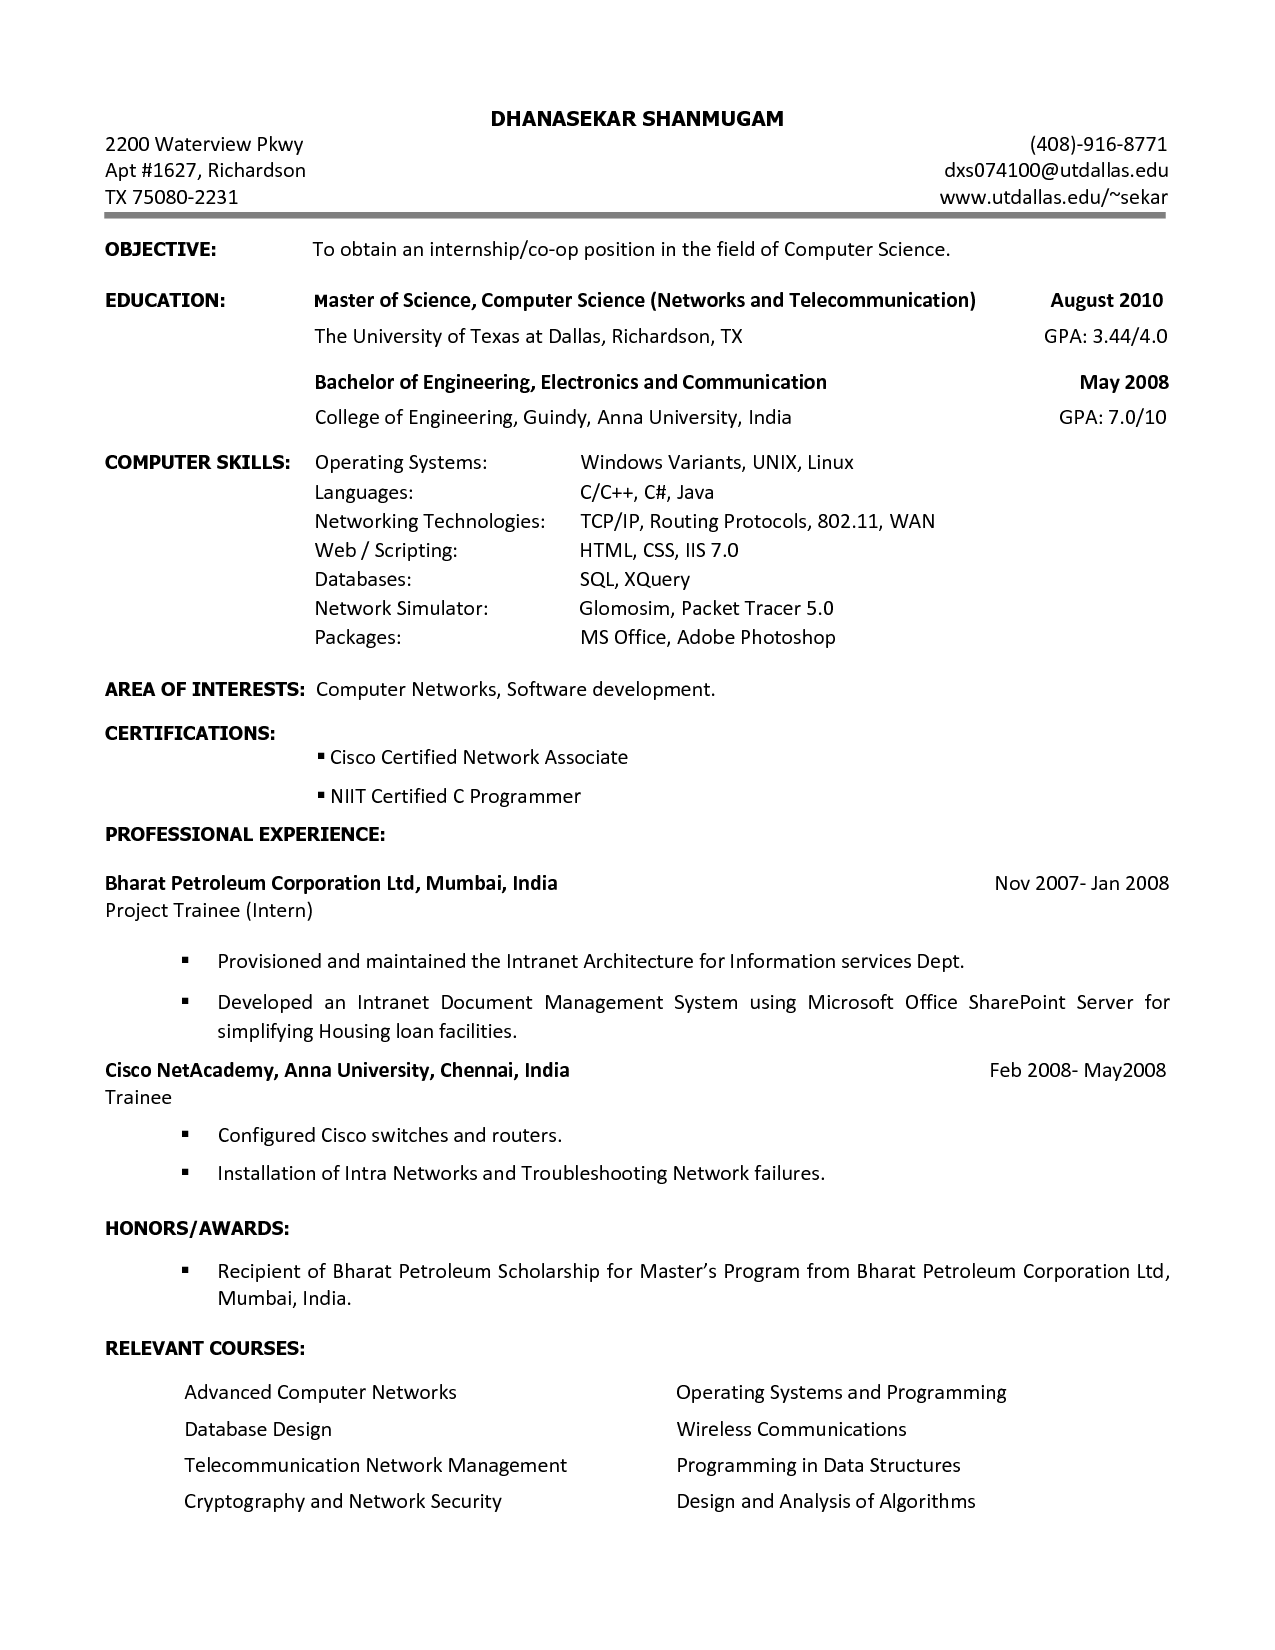 Resume Makers Resume Builder Resume Builder Free Download Free Resume